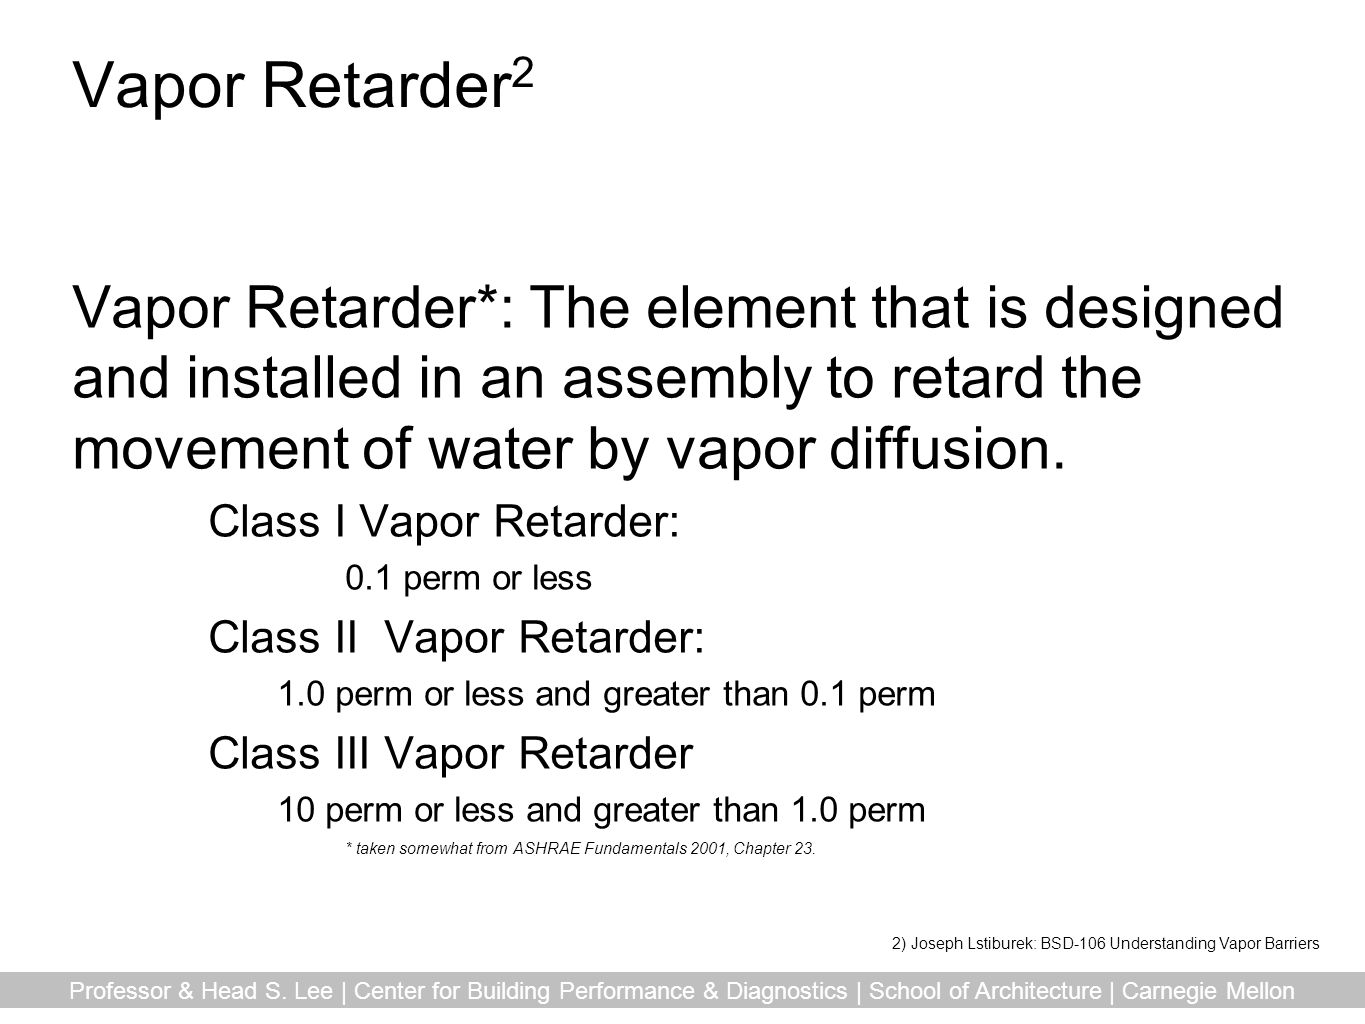 Vapor Retarder2 Vapor Retarder*: The element that is designed and installed in an assembly to retard the movement of water by vapor diffusion.